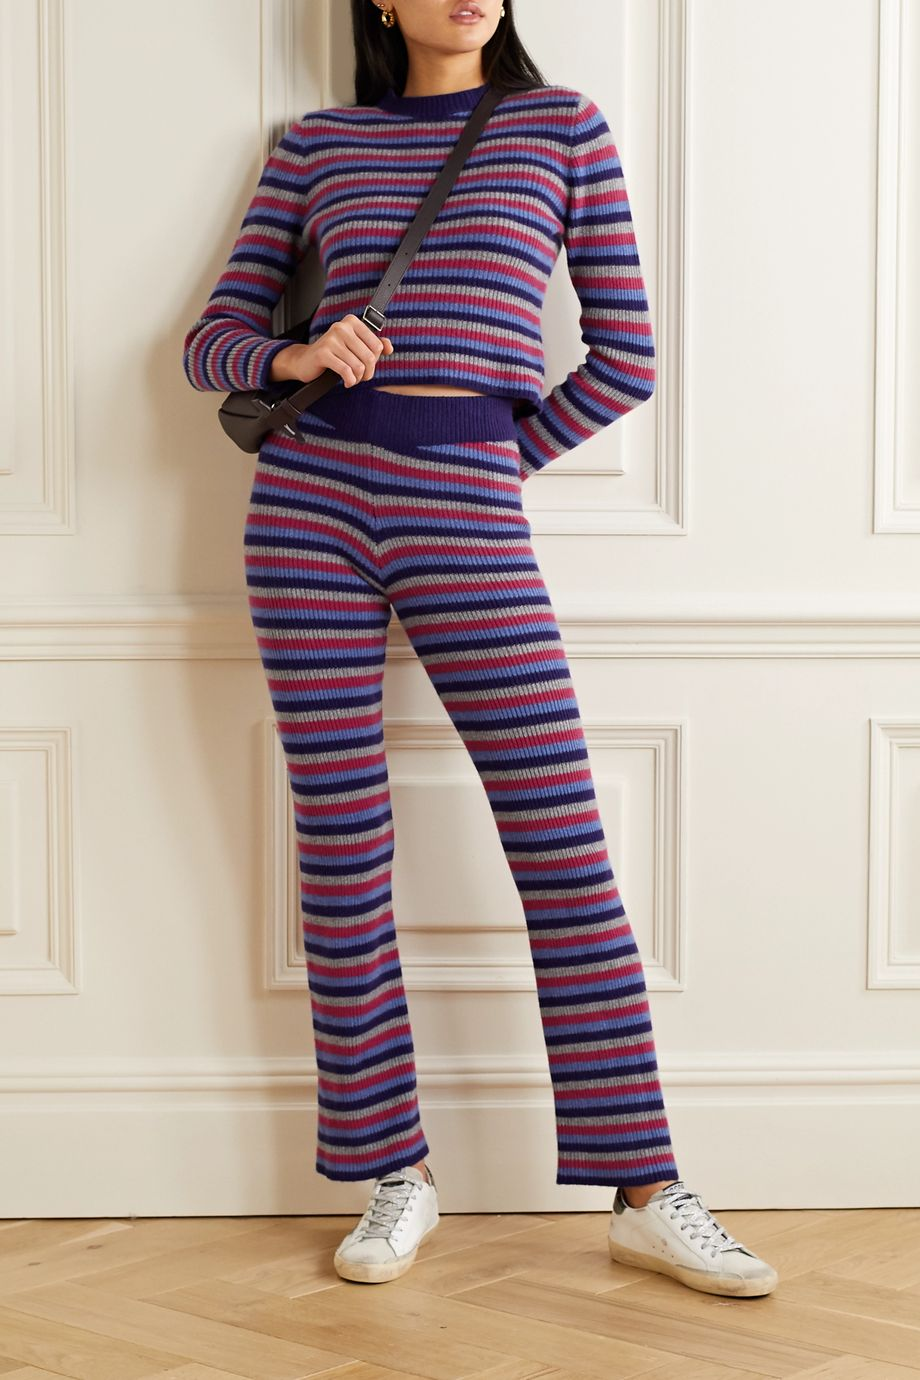 The Elder Statesman Ribbed striped cashmere flared pants